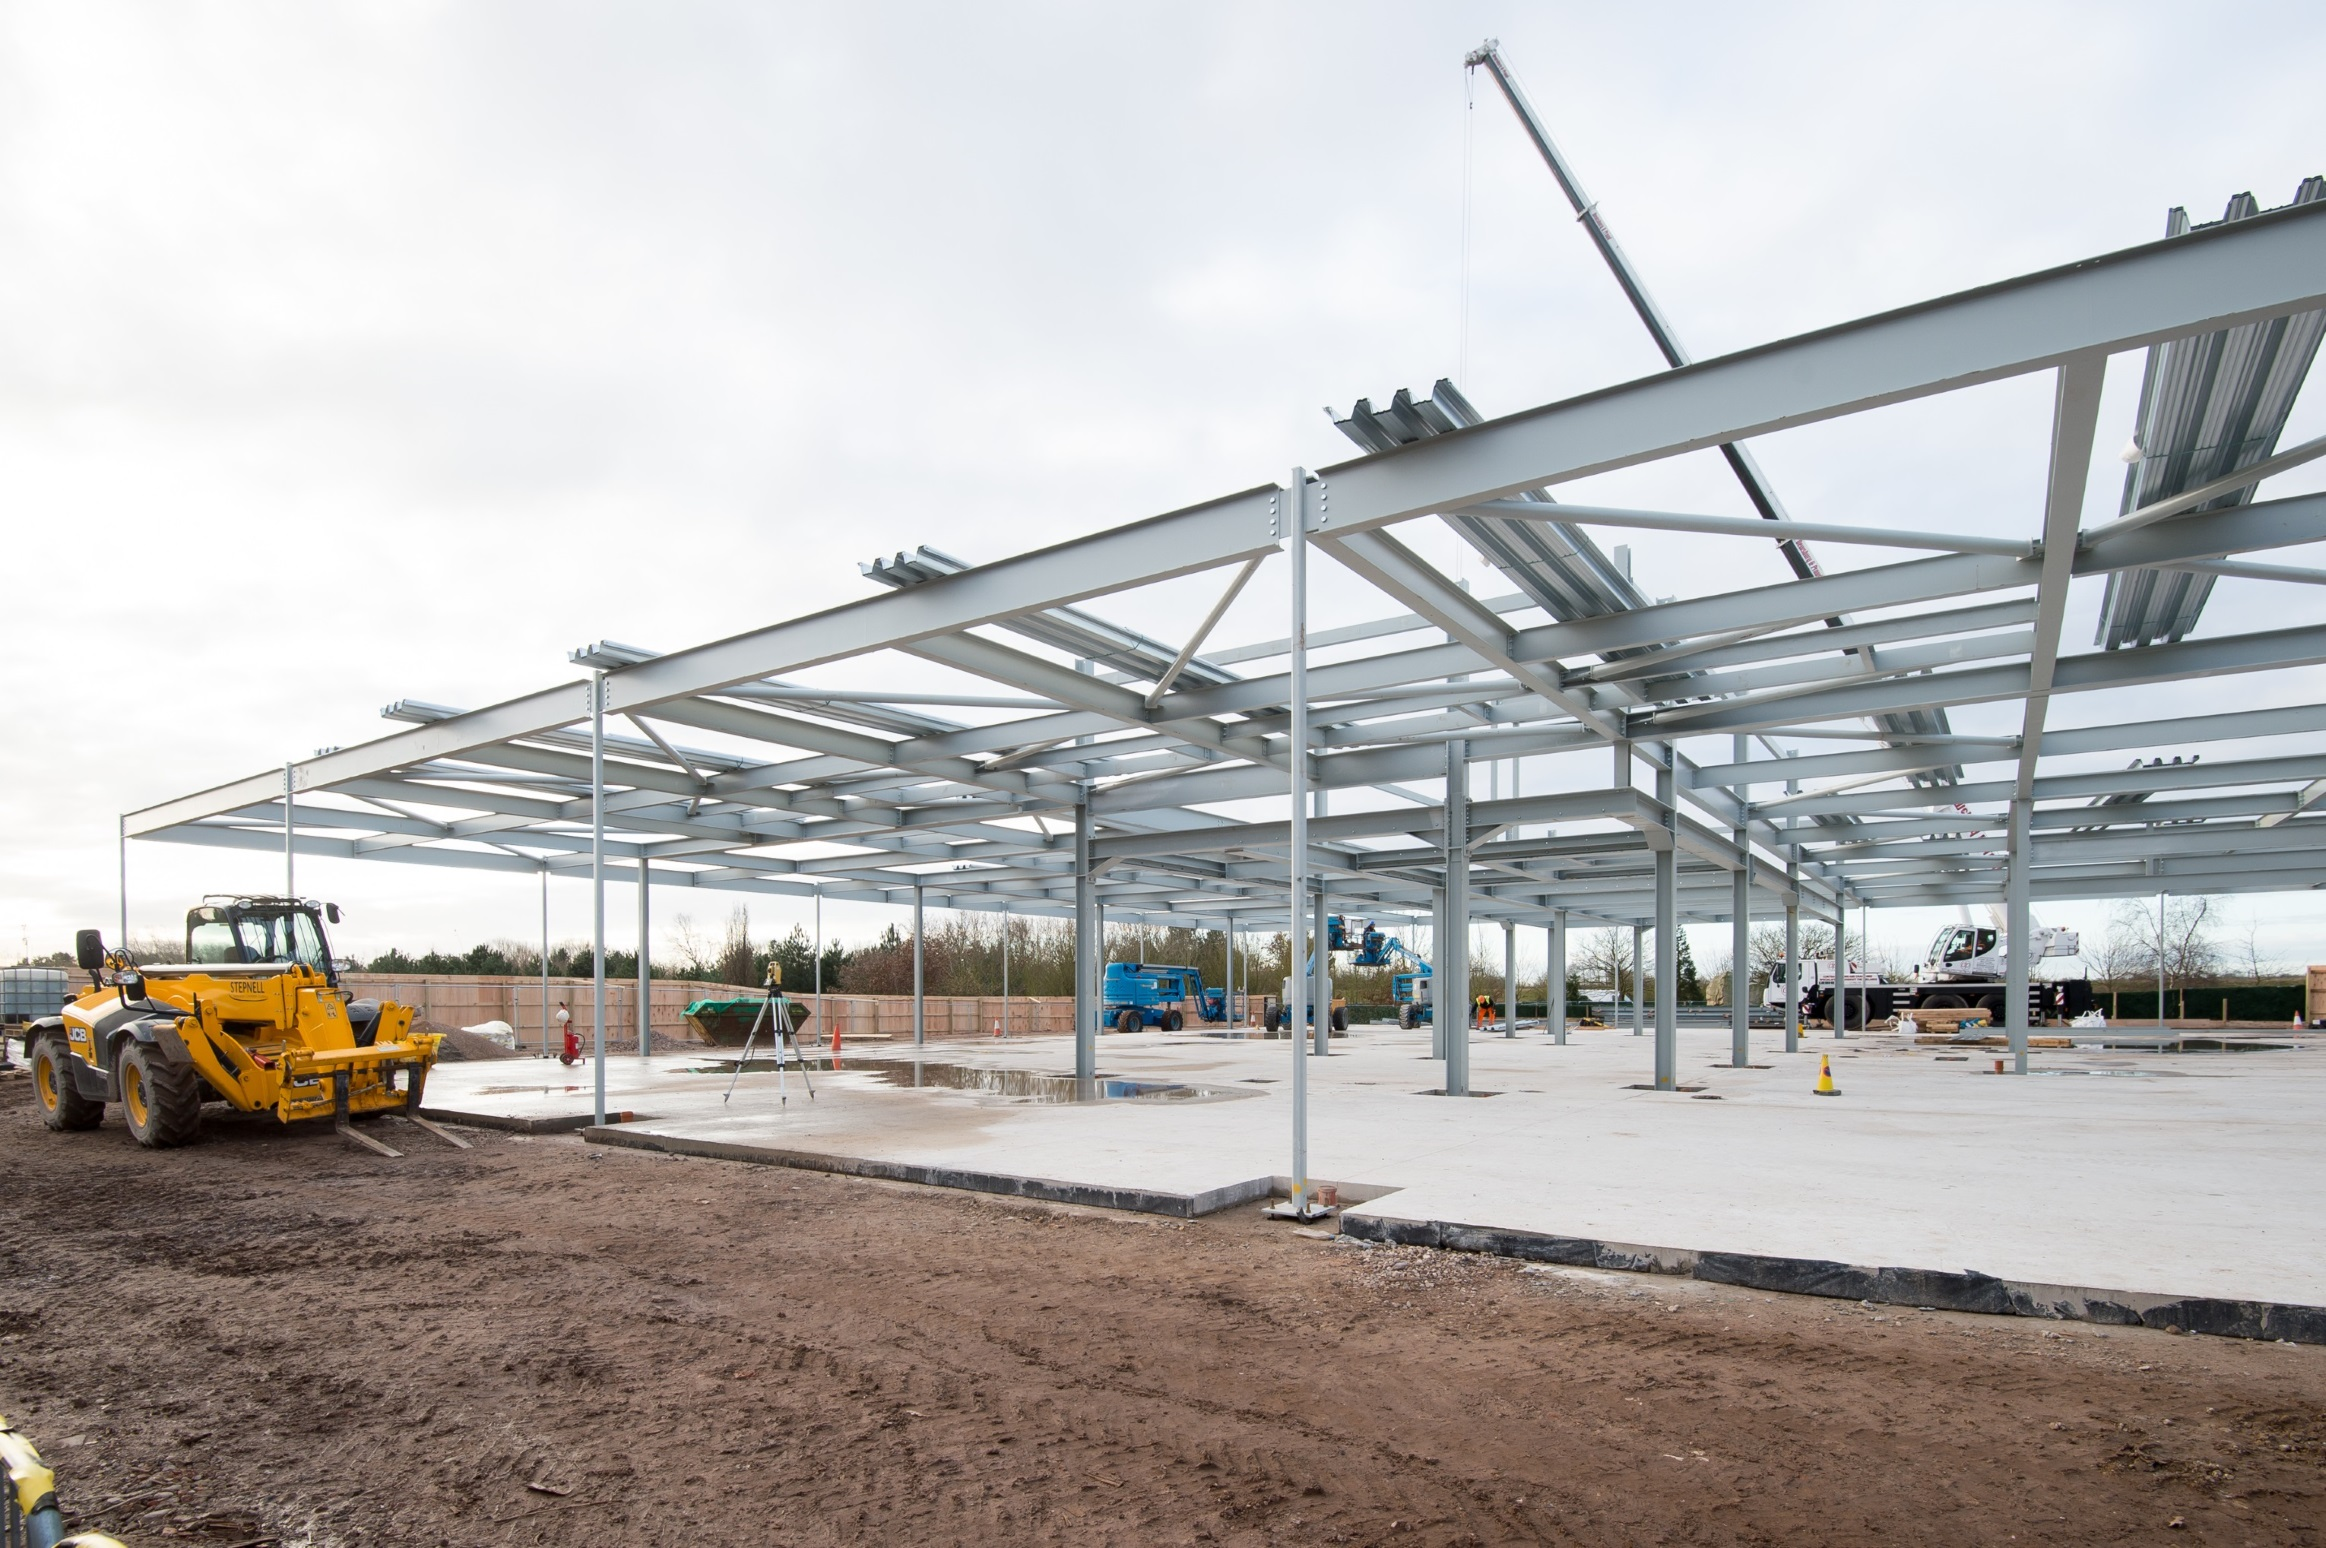 STEELWORK GOES UP AS EVENTS BUILDING FOR NATIONAL MEMORIAL ...